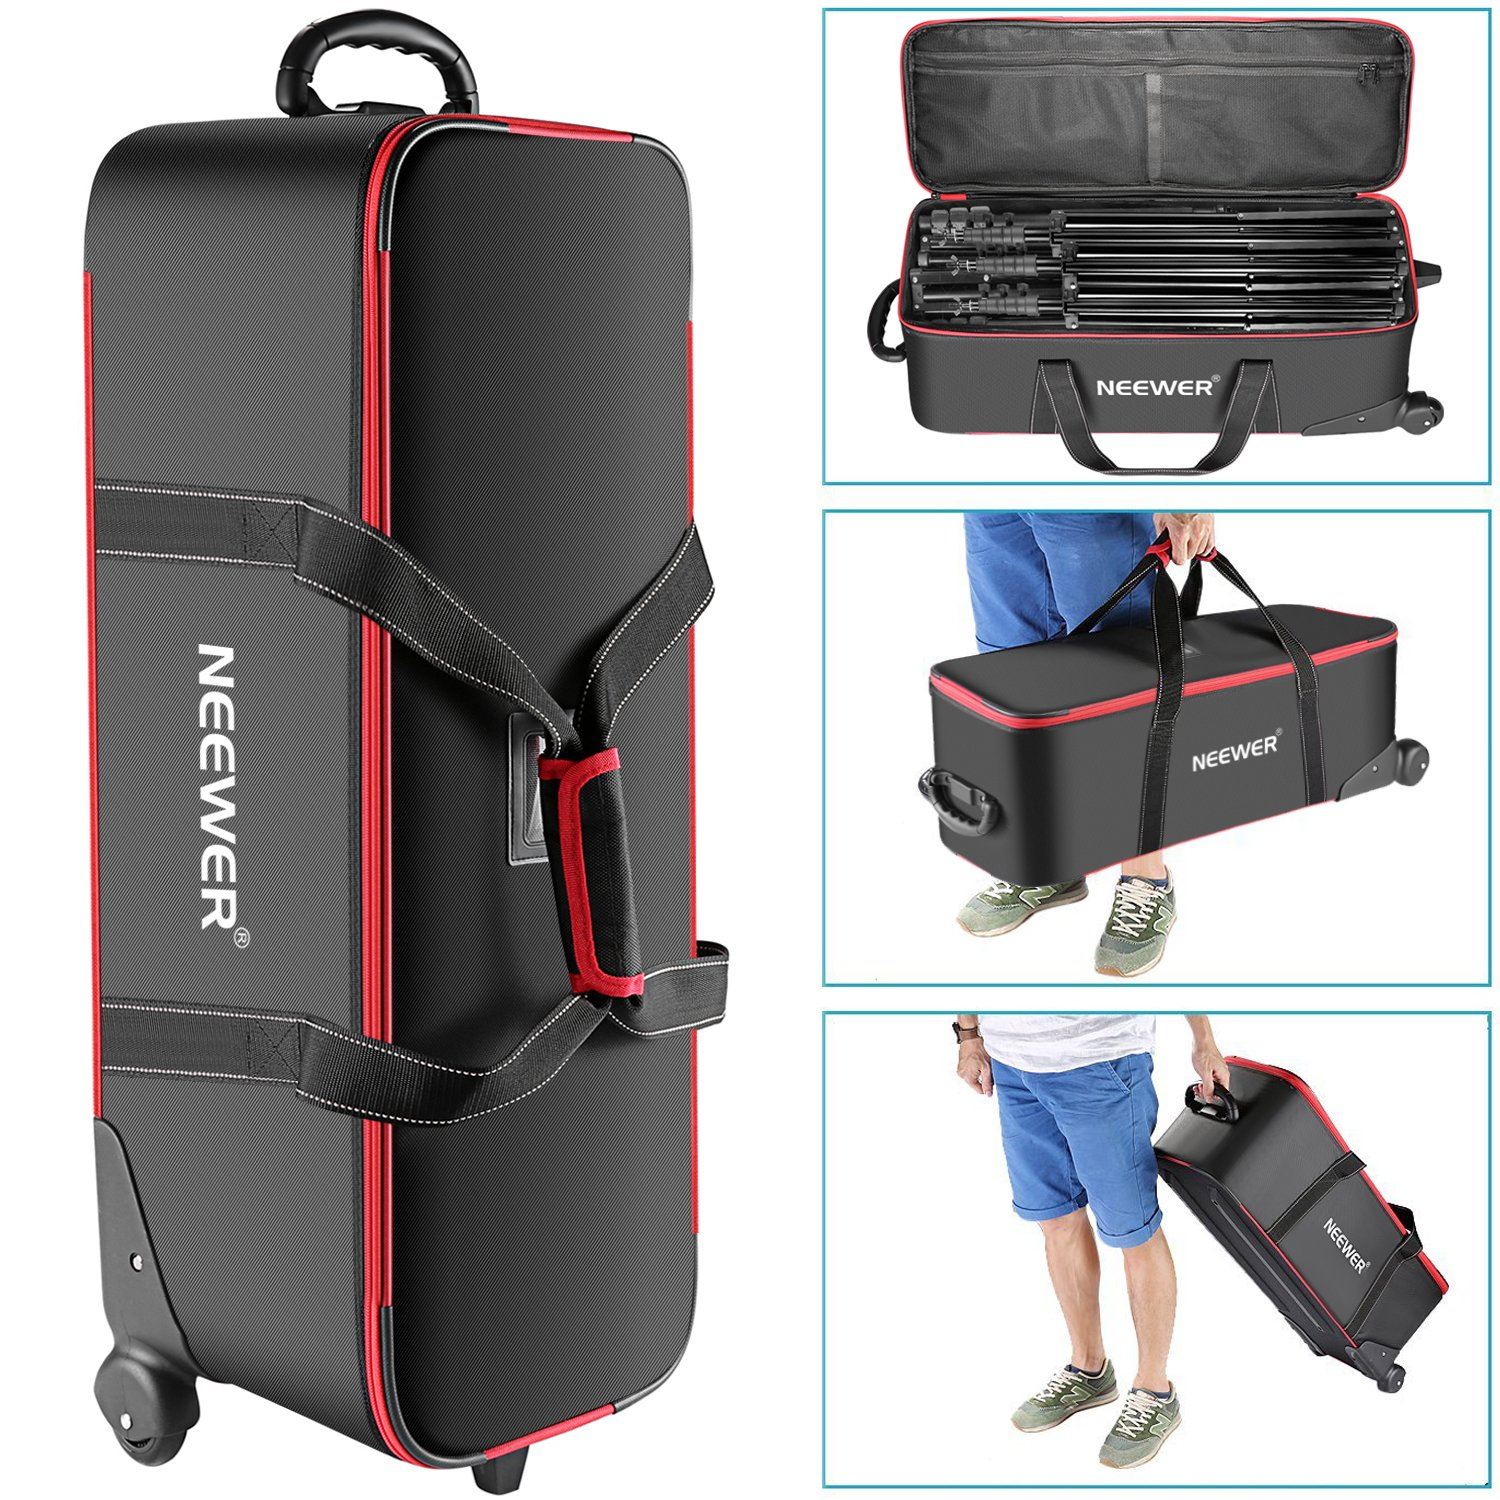 Neewer Photo Studio Equipment Trolley Carry Bag 30'x11'x11'/77x28x27cm with Straps Padded Compartment Wheel, Handle for Light Stand, Tripod, Strobe Light, Umbrella, Photo Studio and Other Accessories 10087969